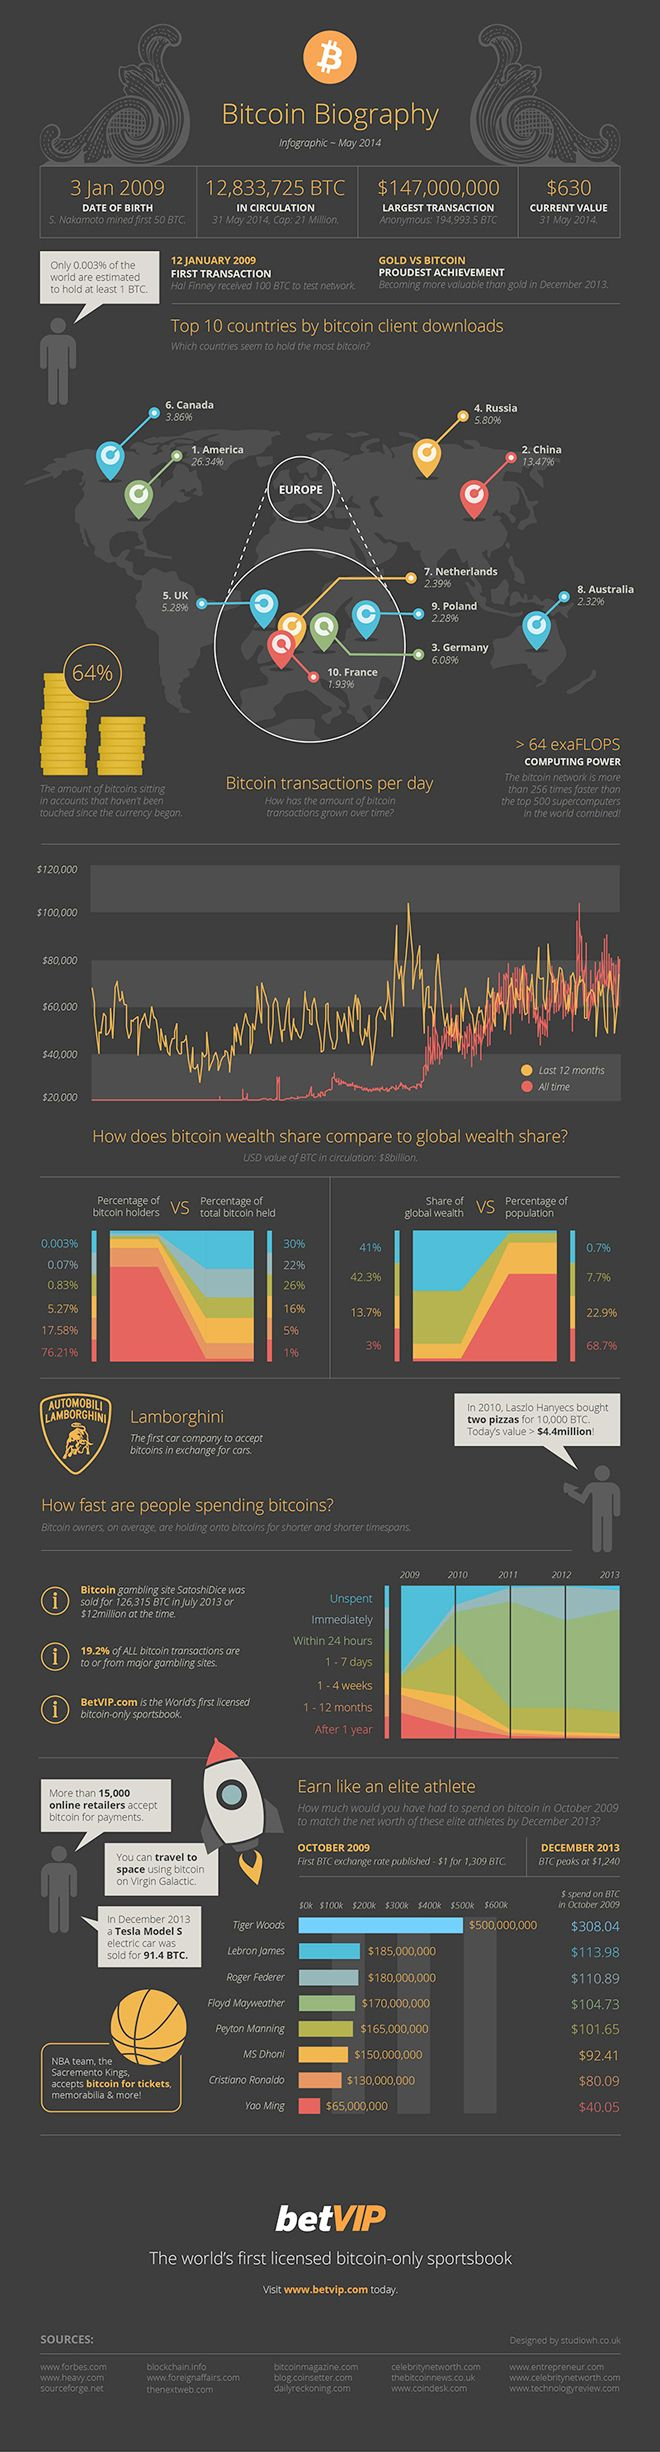 14 Best Infographics Images On Pinterest Infographic Dc Ac Virtual Lab Online Geeks Betvipcom The Worlds First Licensed Bitcoin Only Sportsbook Has Released This